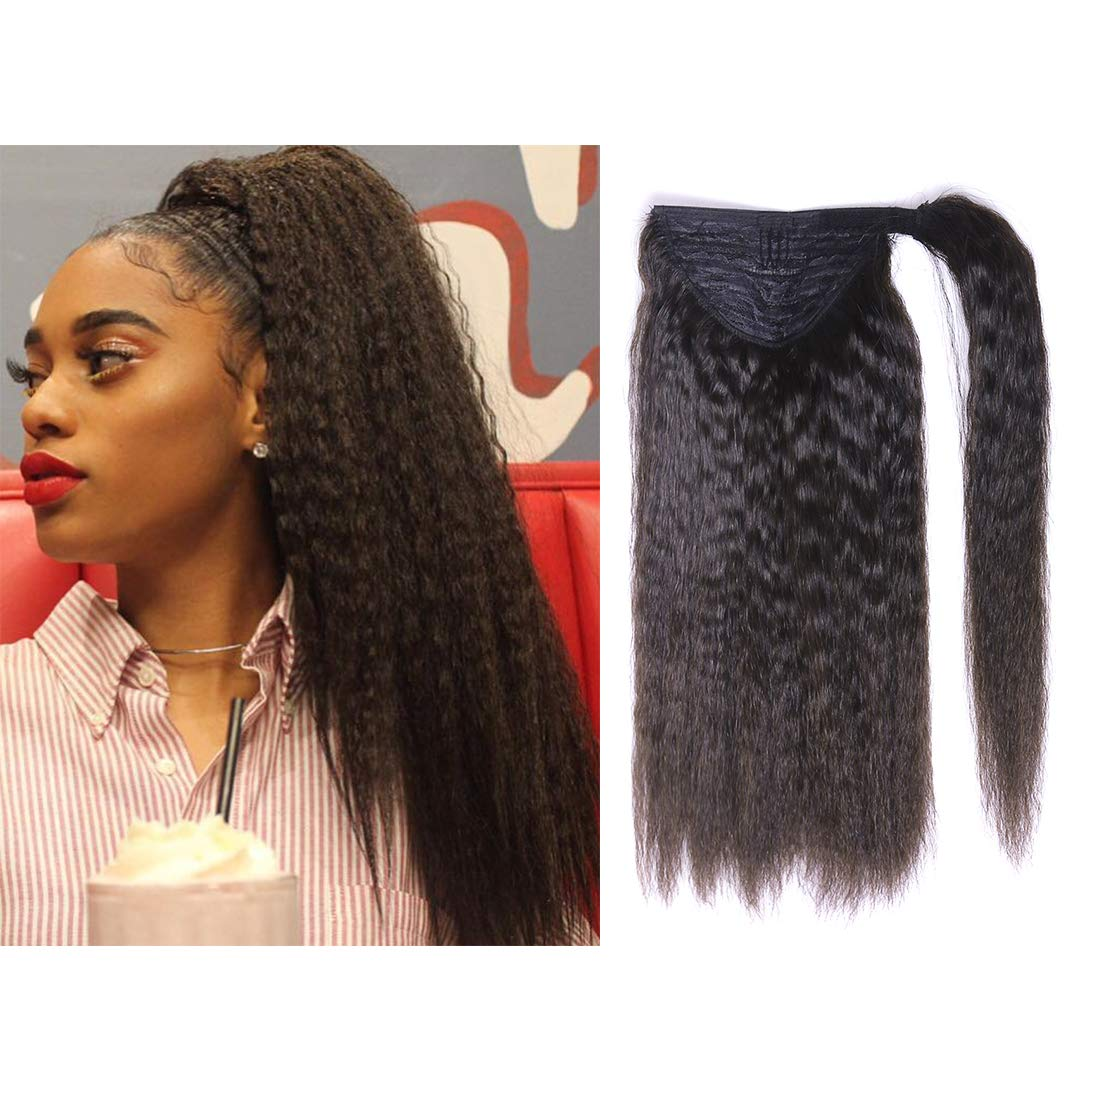 LacerHair Kinky Yaki Straight Ponytail Remy Human Hair Extension Wrap Around Coarse Curly Top Closure Clip Ins 100g/Piece Natural Black for Black Women 10-22 inch (20 inch, Kinky Straight #1B)